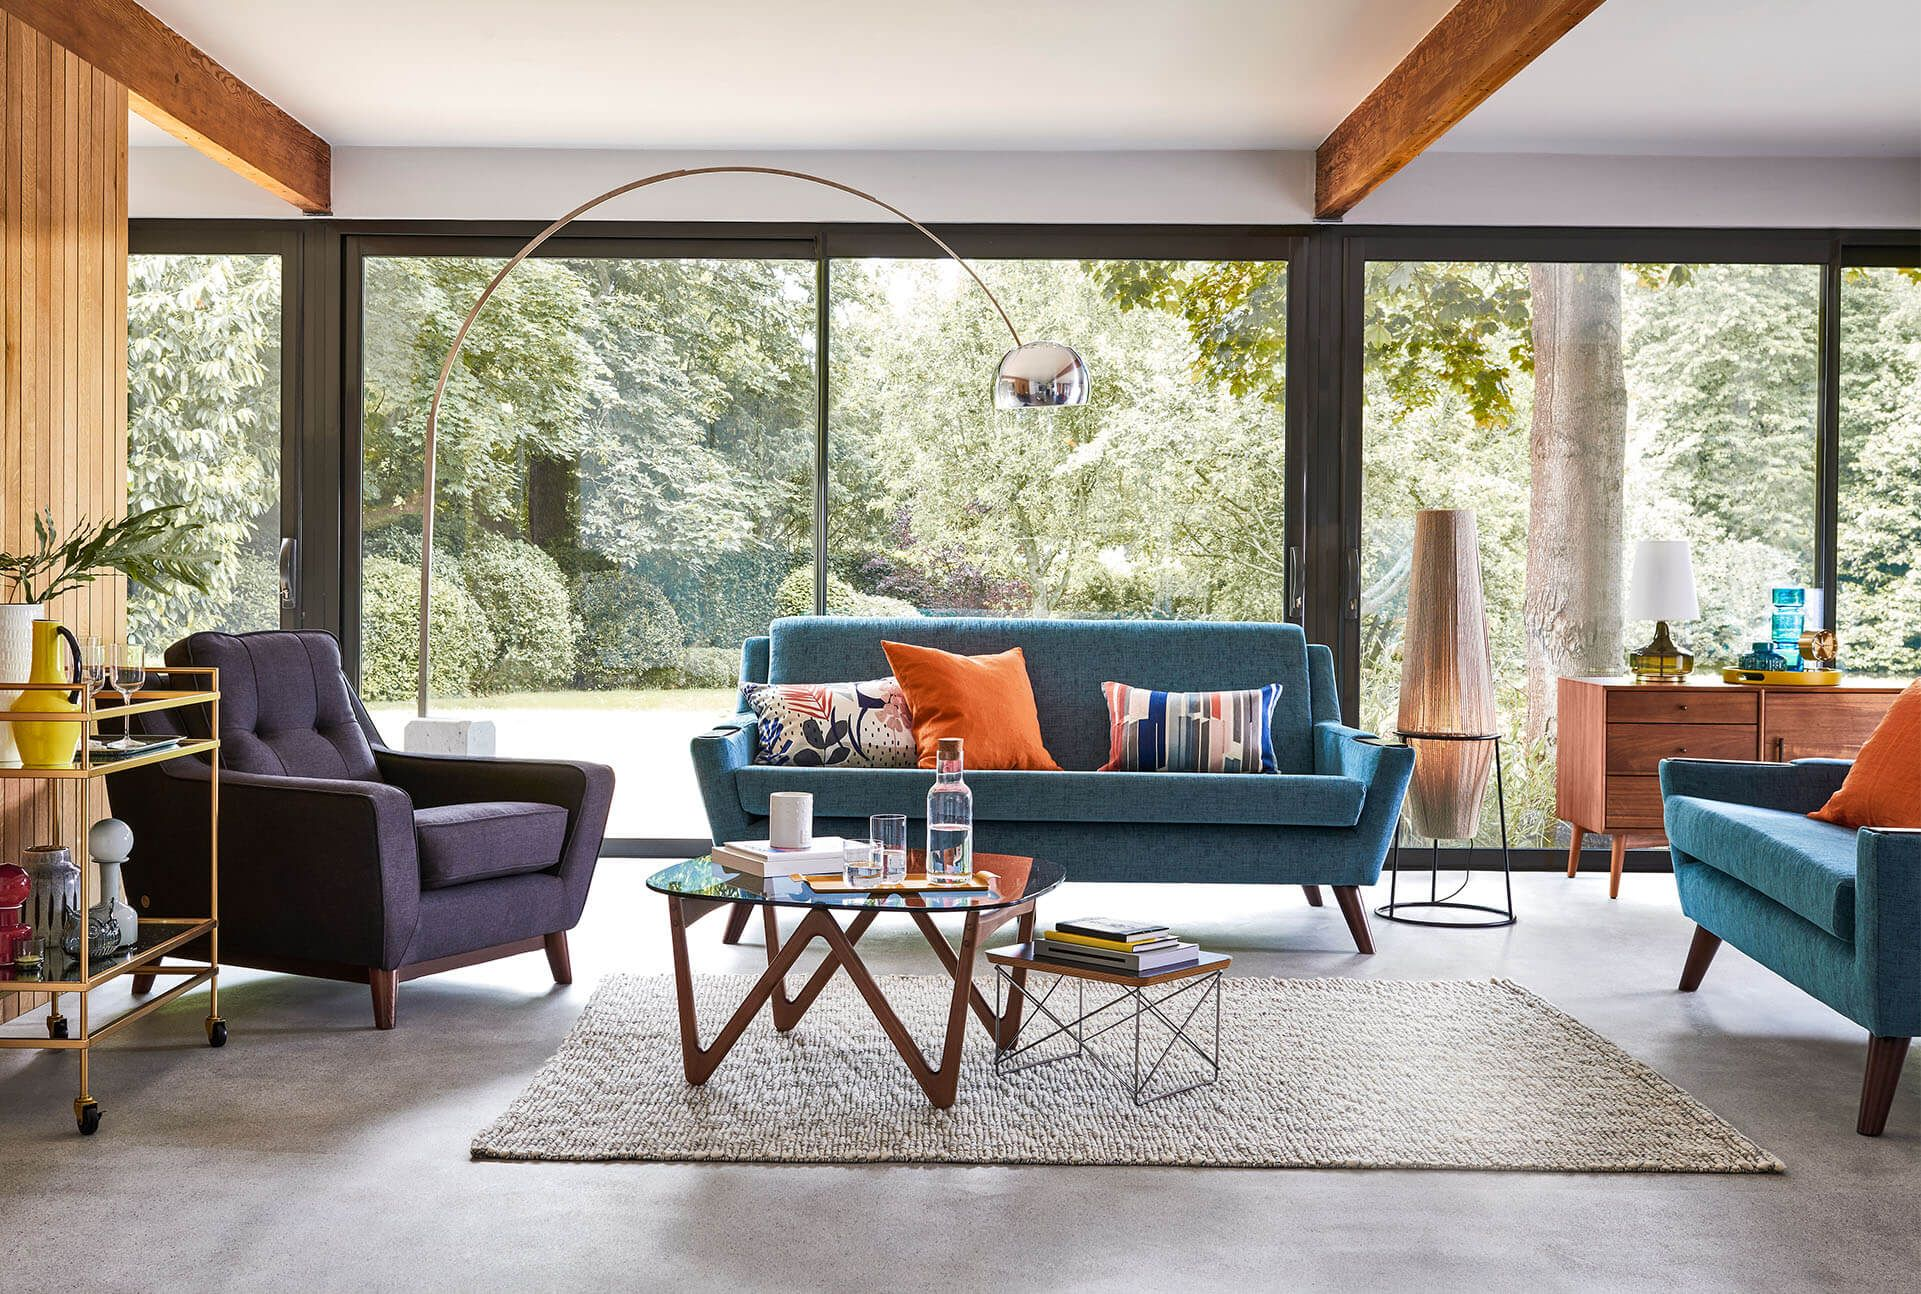 Designer Sofas John Lewis How To Style The John Lewis Interior Design Trends For A W 2018